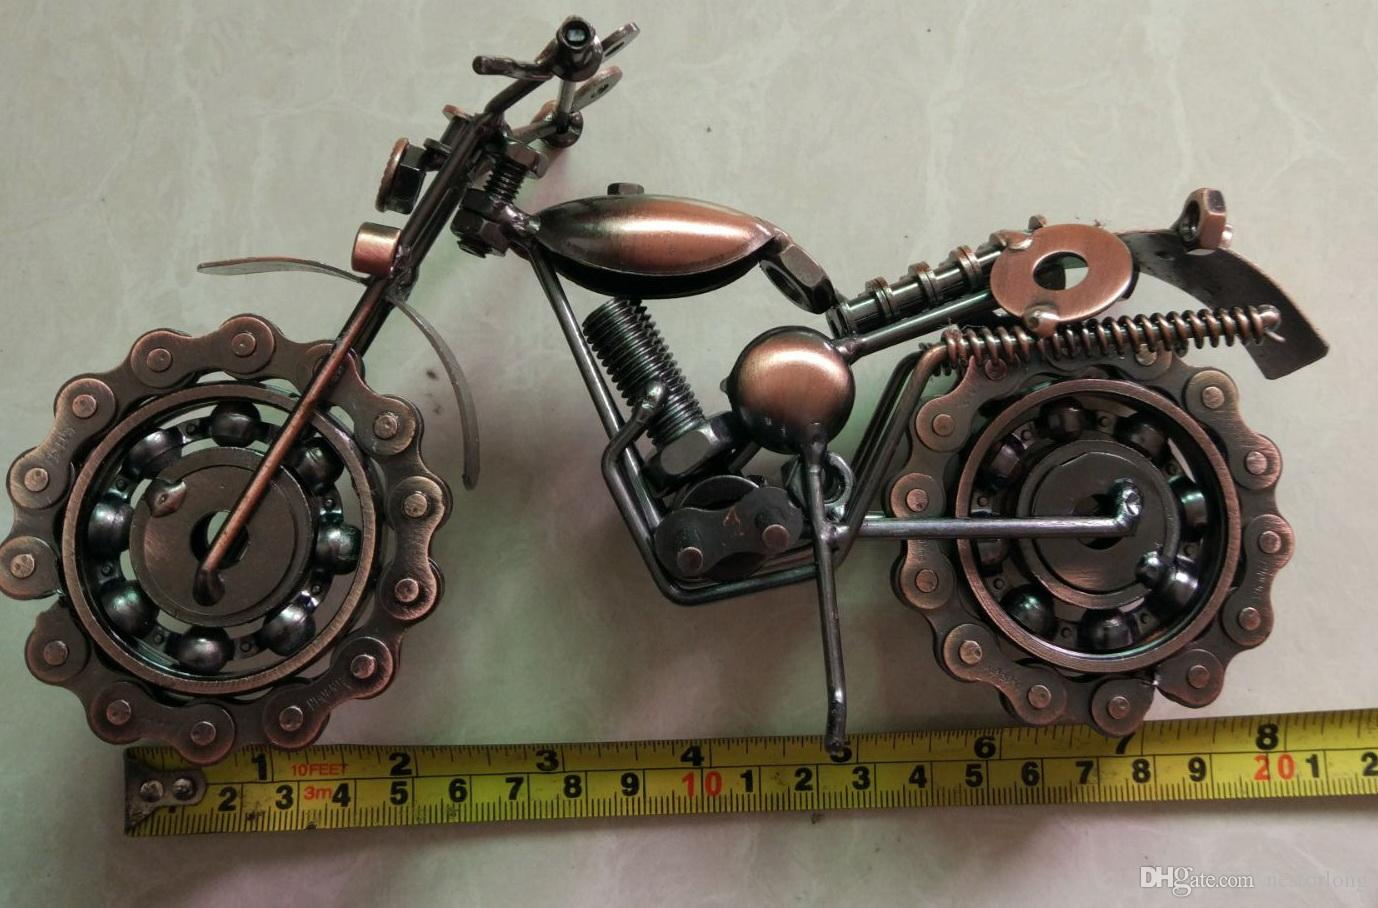 2016 hot sale motorcycle davidson models oversized iron metal crafts creative gift ideas home decoration crafts